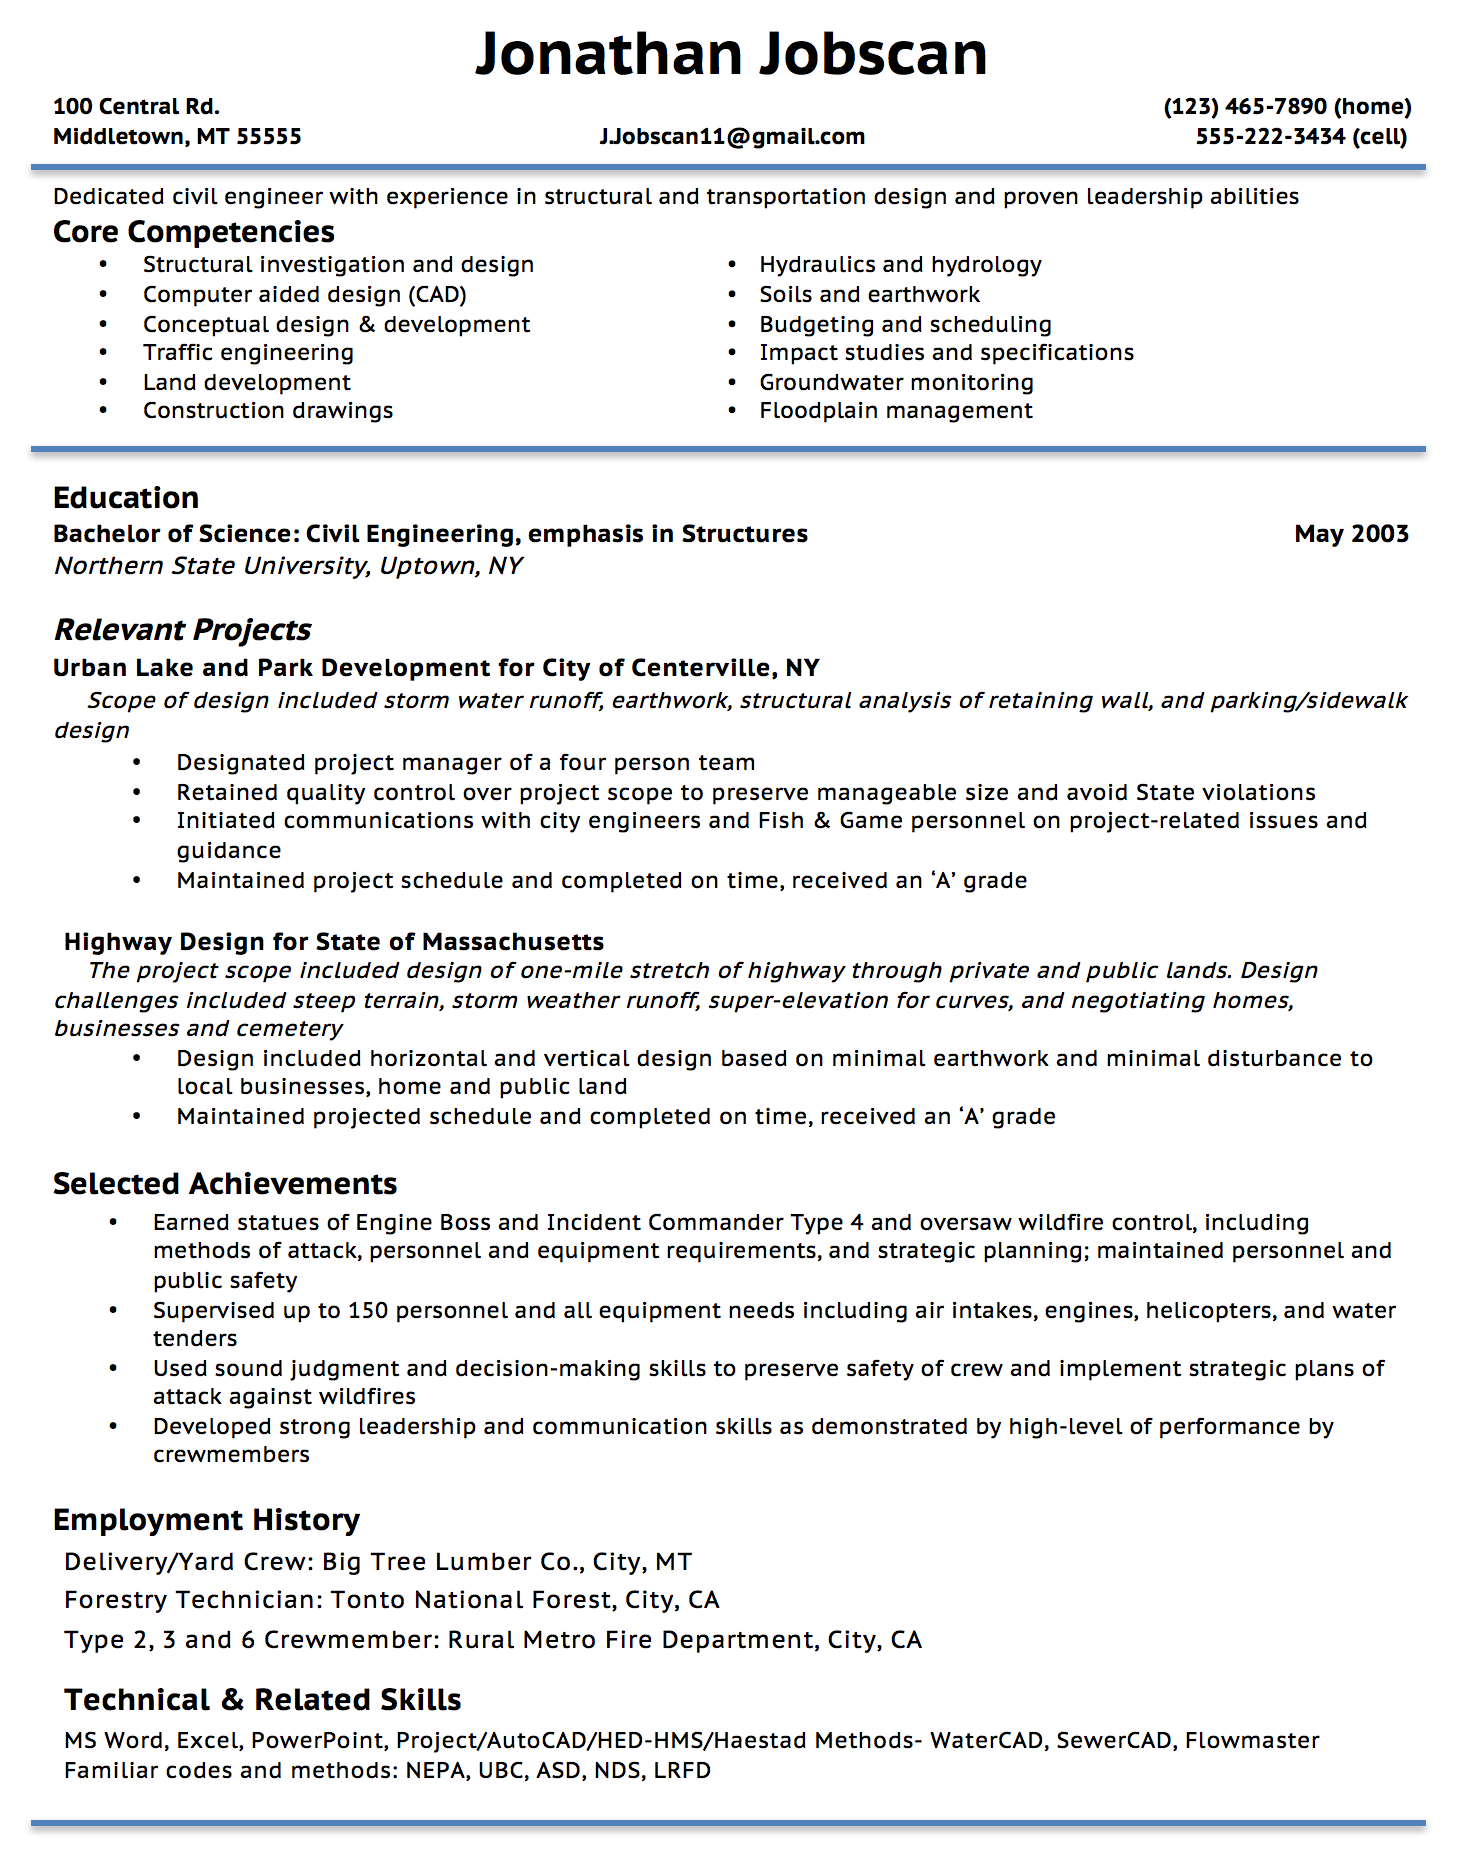 Opposenewapstandardsus  Remarkable Resume Writing Guide  Jobscan With Inspiring Example Of A Functional Resume Format With Awesome Resume Cover Letters Sample Also Professional Profile On Resume In Addition Executive Summary Example Resume And Cocktail Server Resume As Well As Digital Marketing Manager Resume Additionally Free Resume Evaluation From Jobscanco With Opposenewapstandardsus  Inspiring Resume Writing Guide  Jobscan With Awesome Example Of A Functional Resume Format And Remarkable Resume Cover Letters Sample Also Professional Profile On Resume In Addition Executive Summary Example Resume From Jobscanco